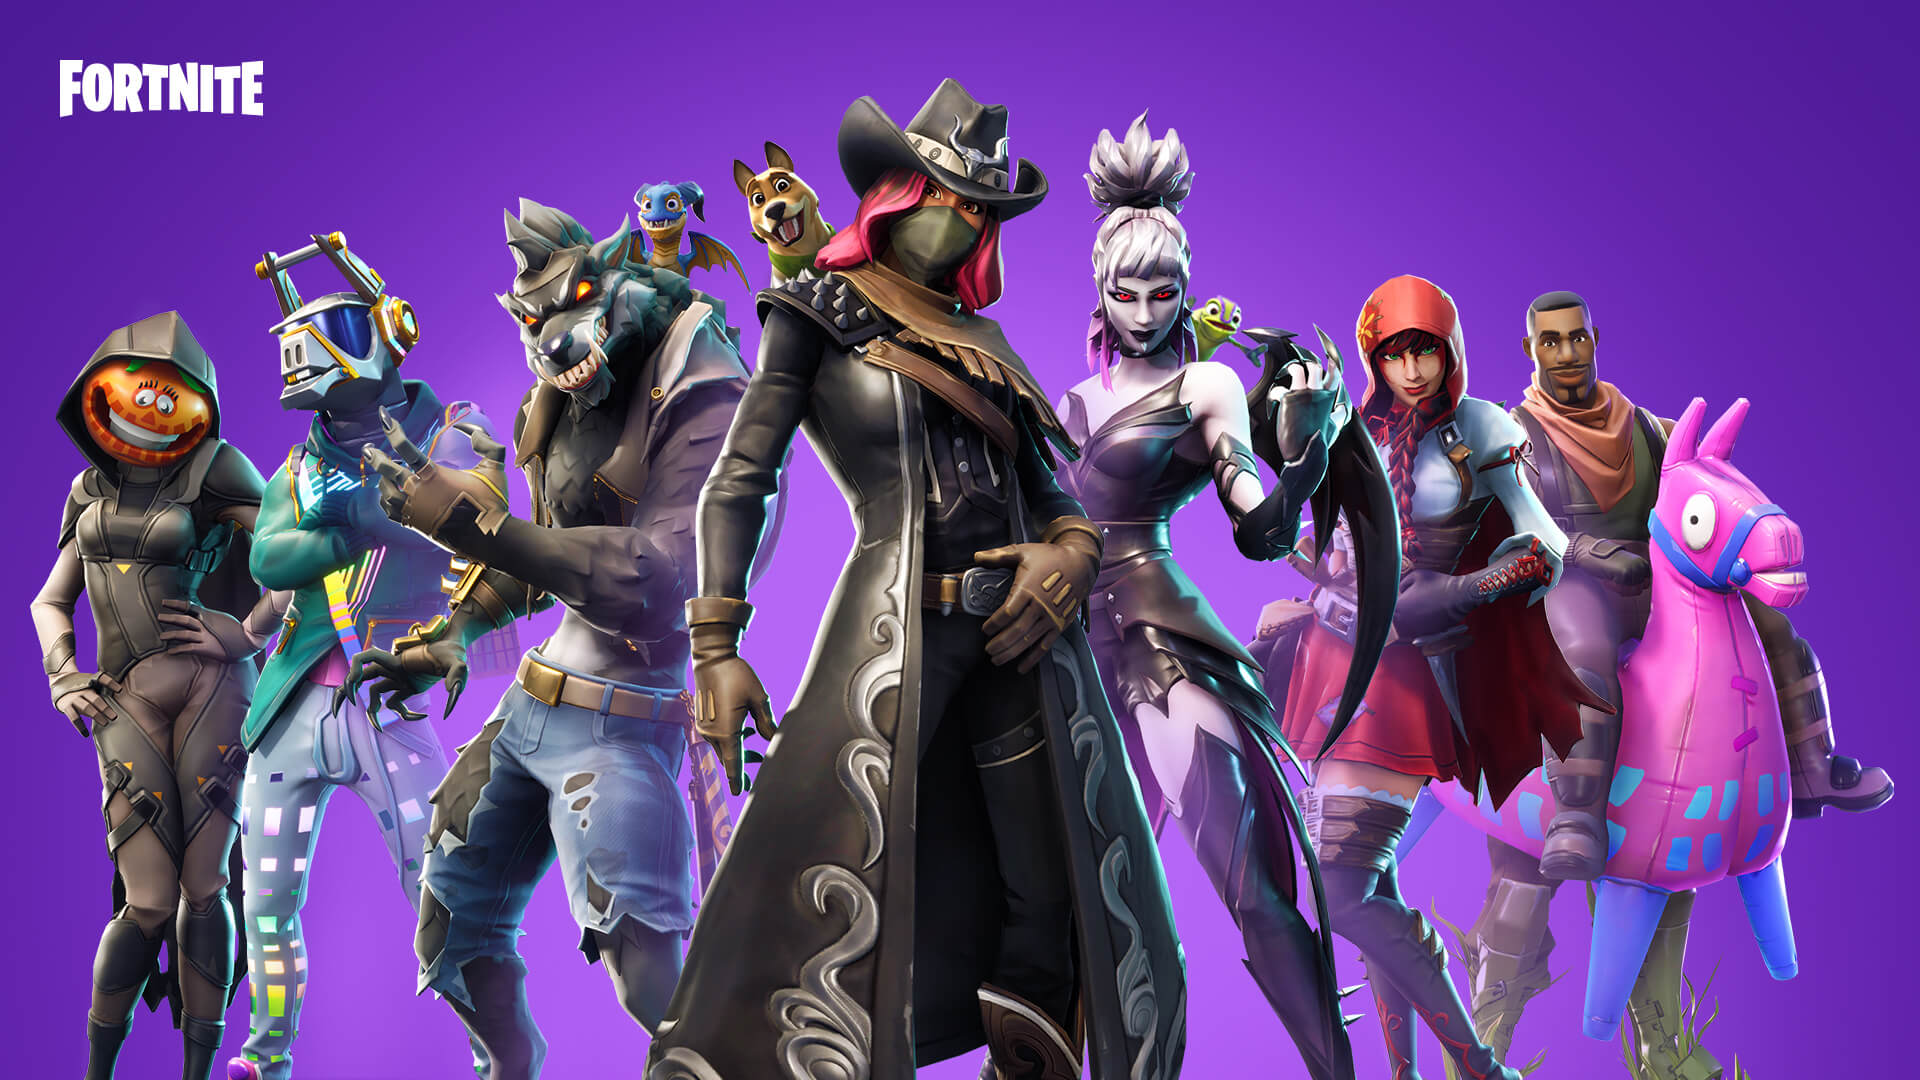 Online Safety Concerned About Fortnite You Are Not Alone Threemilestone Primary School You have to download the game and have a pc or console to play it. fortnite you are not alone